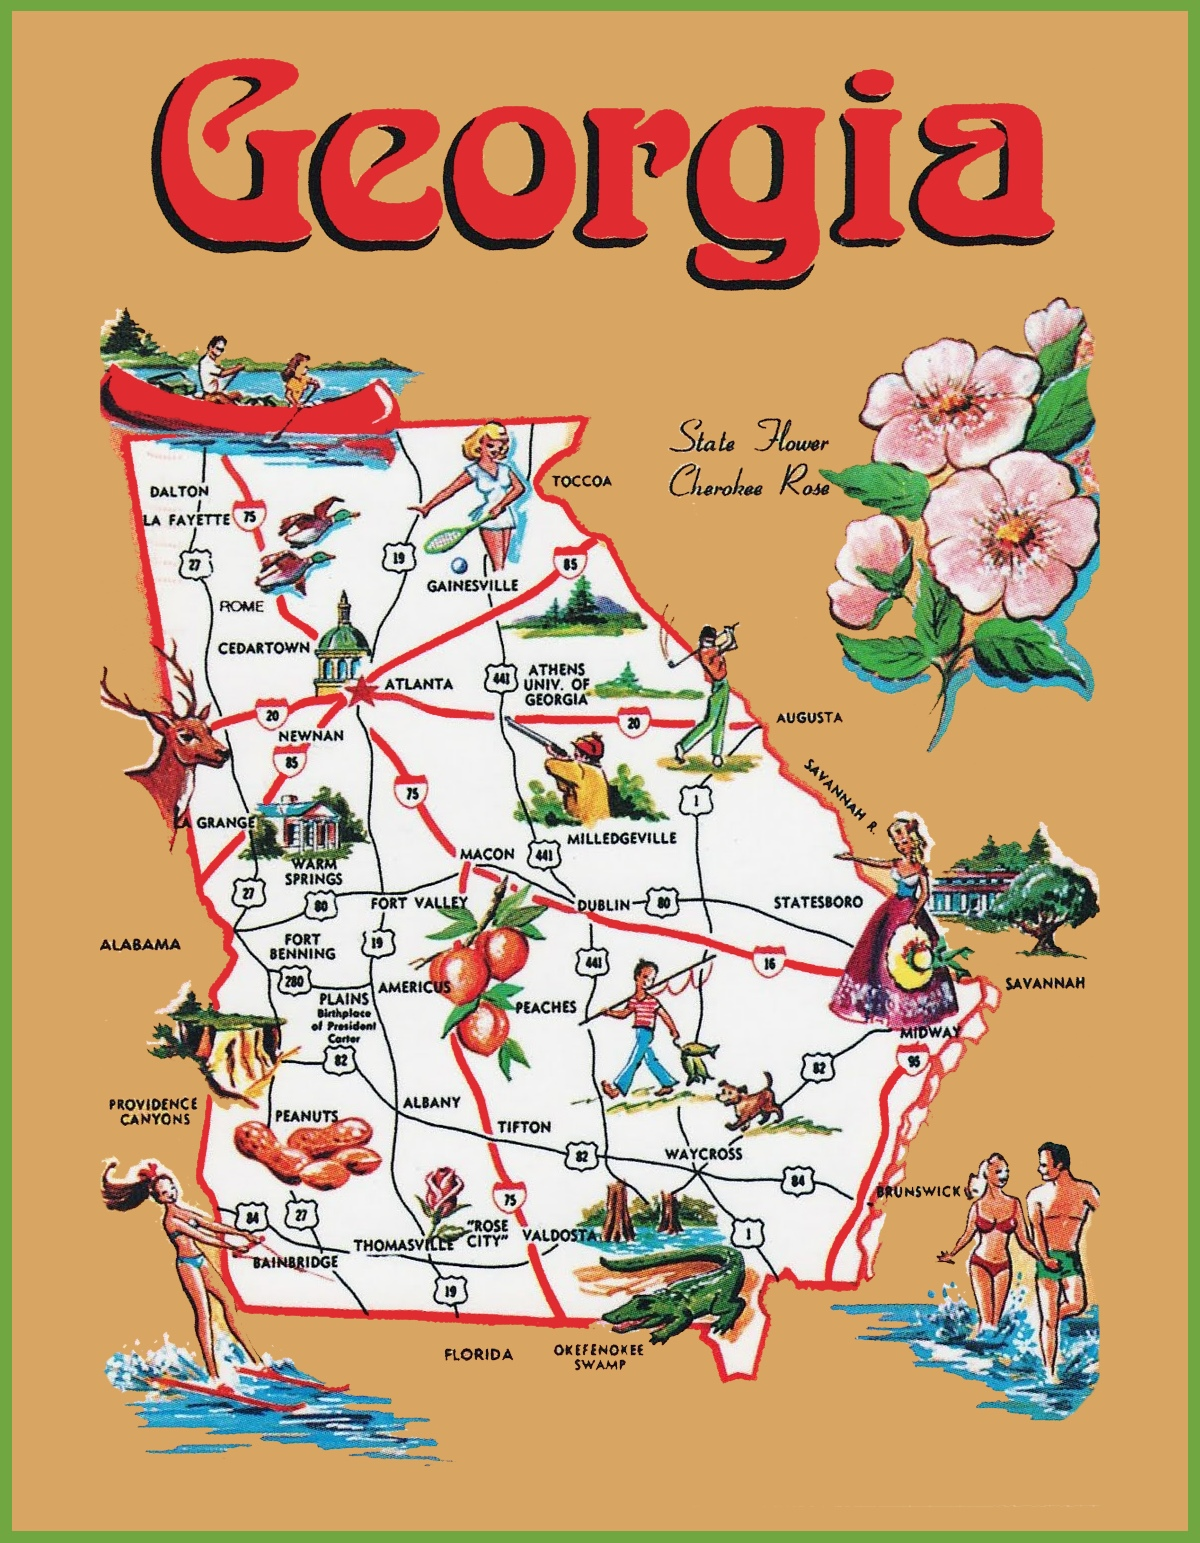 Georgia State Maps USA Maps Of Georgia GA - Georgia maps